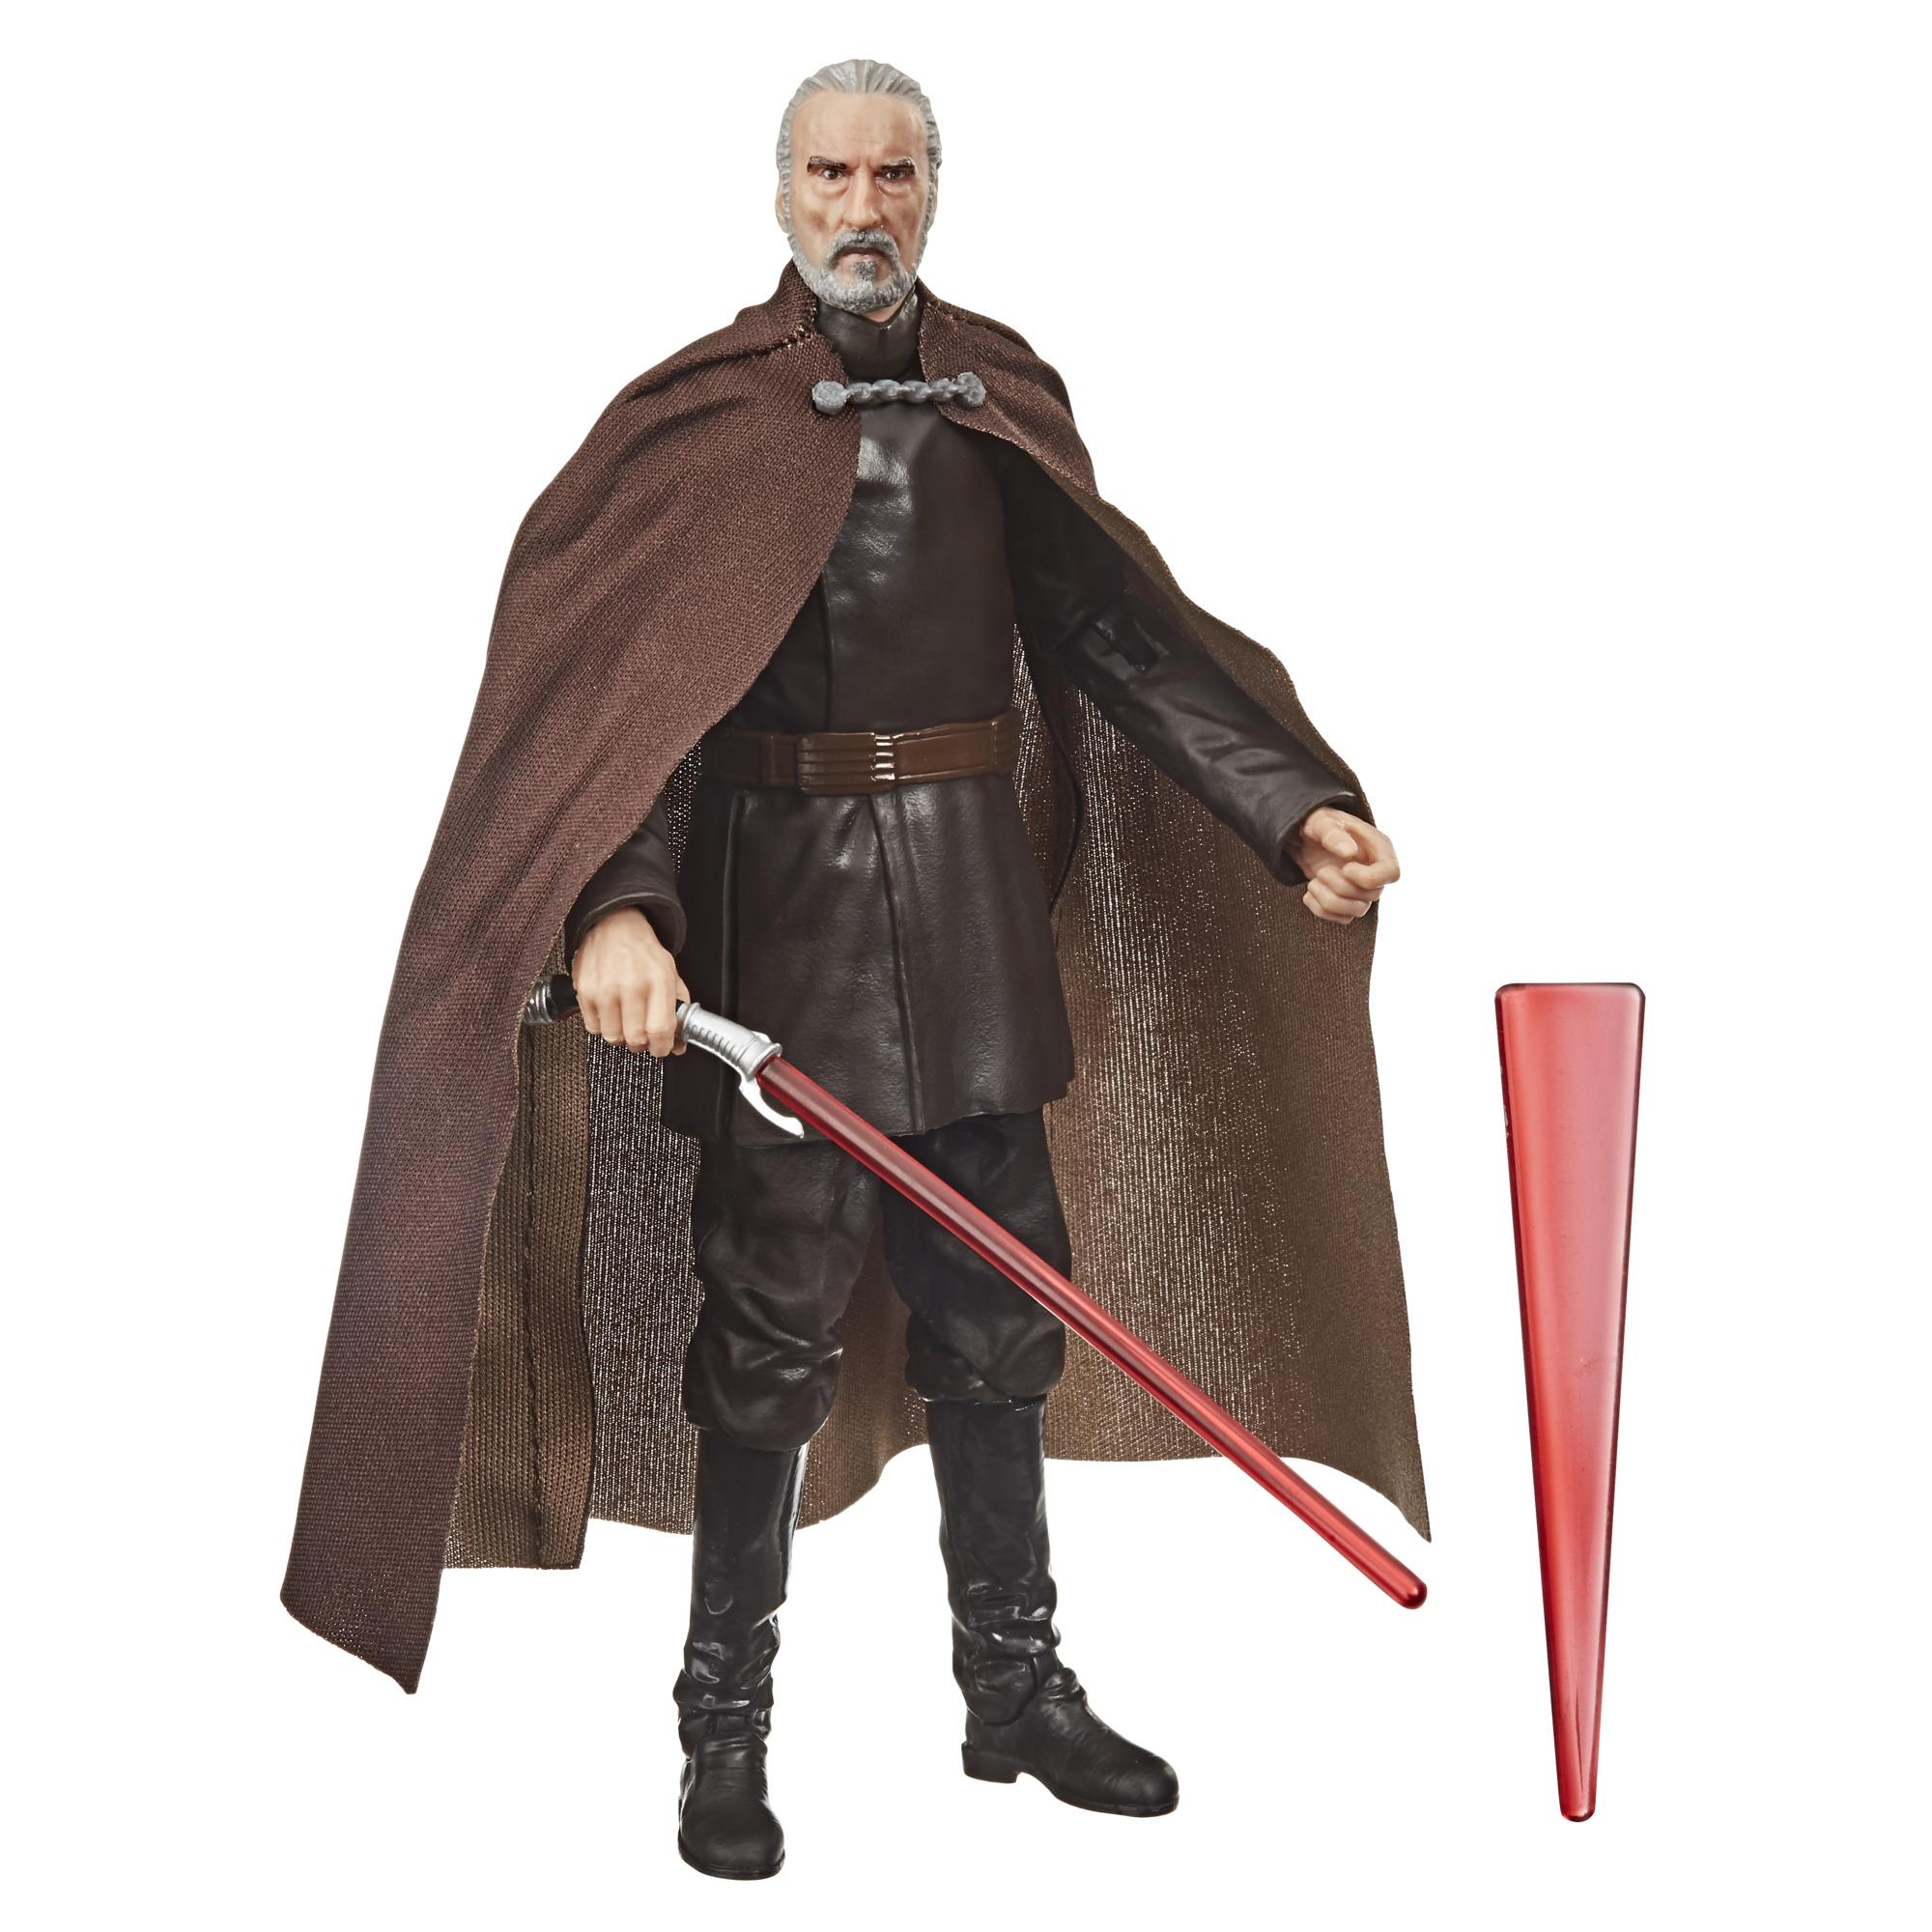 Star Wars The Black Series - Figura de Count Dooku de 15 cm - Star Wars: El ataque de los clones